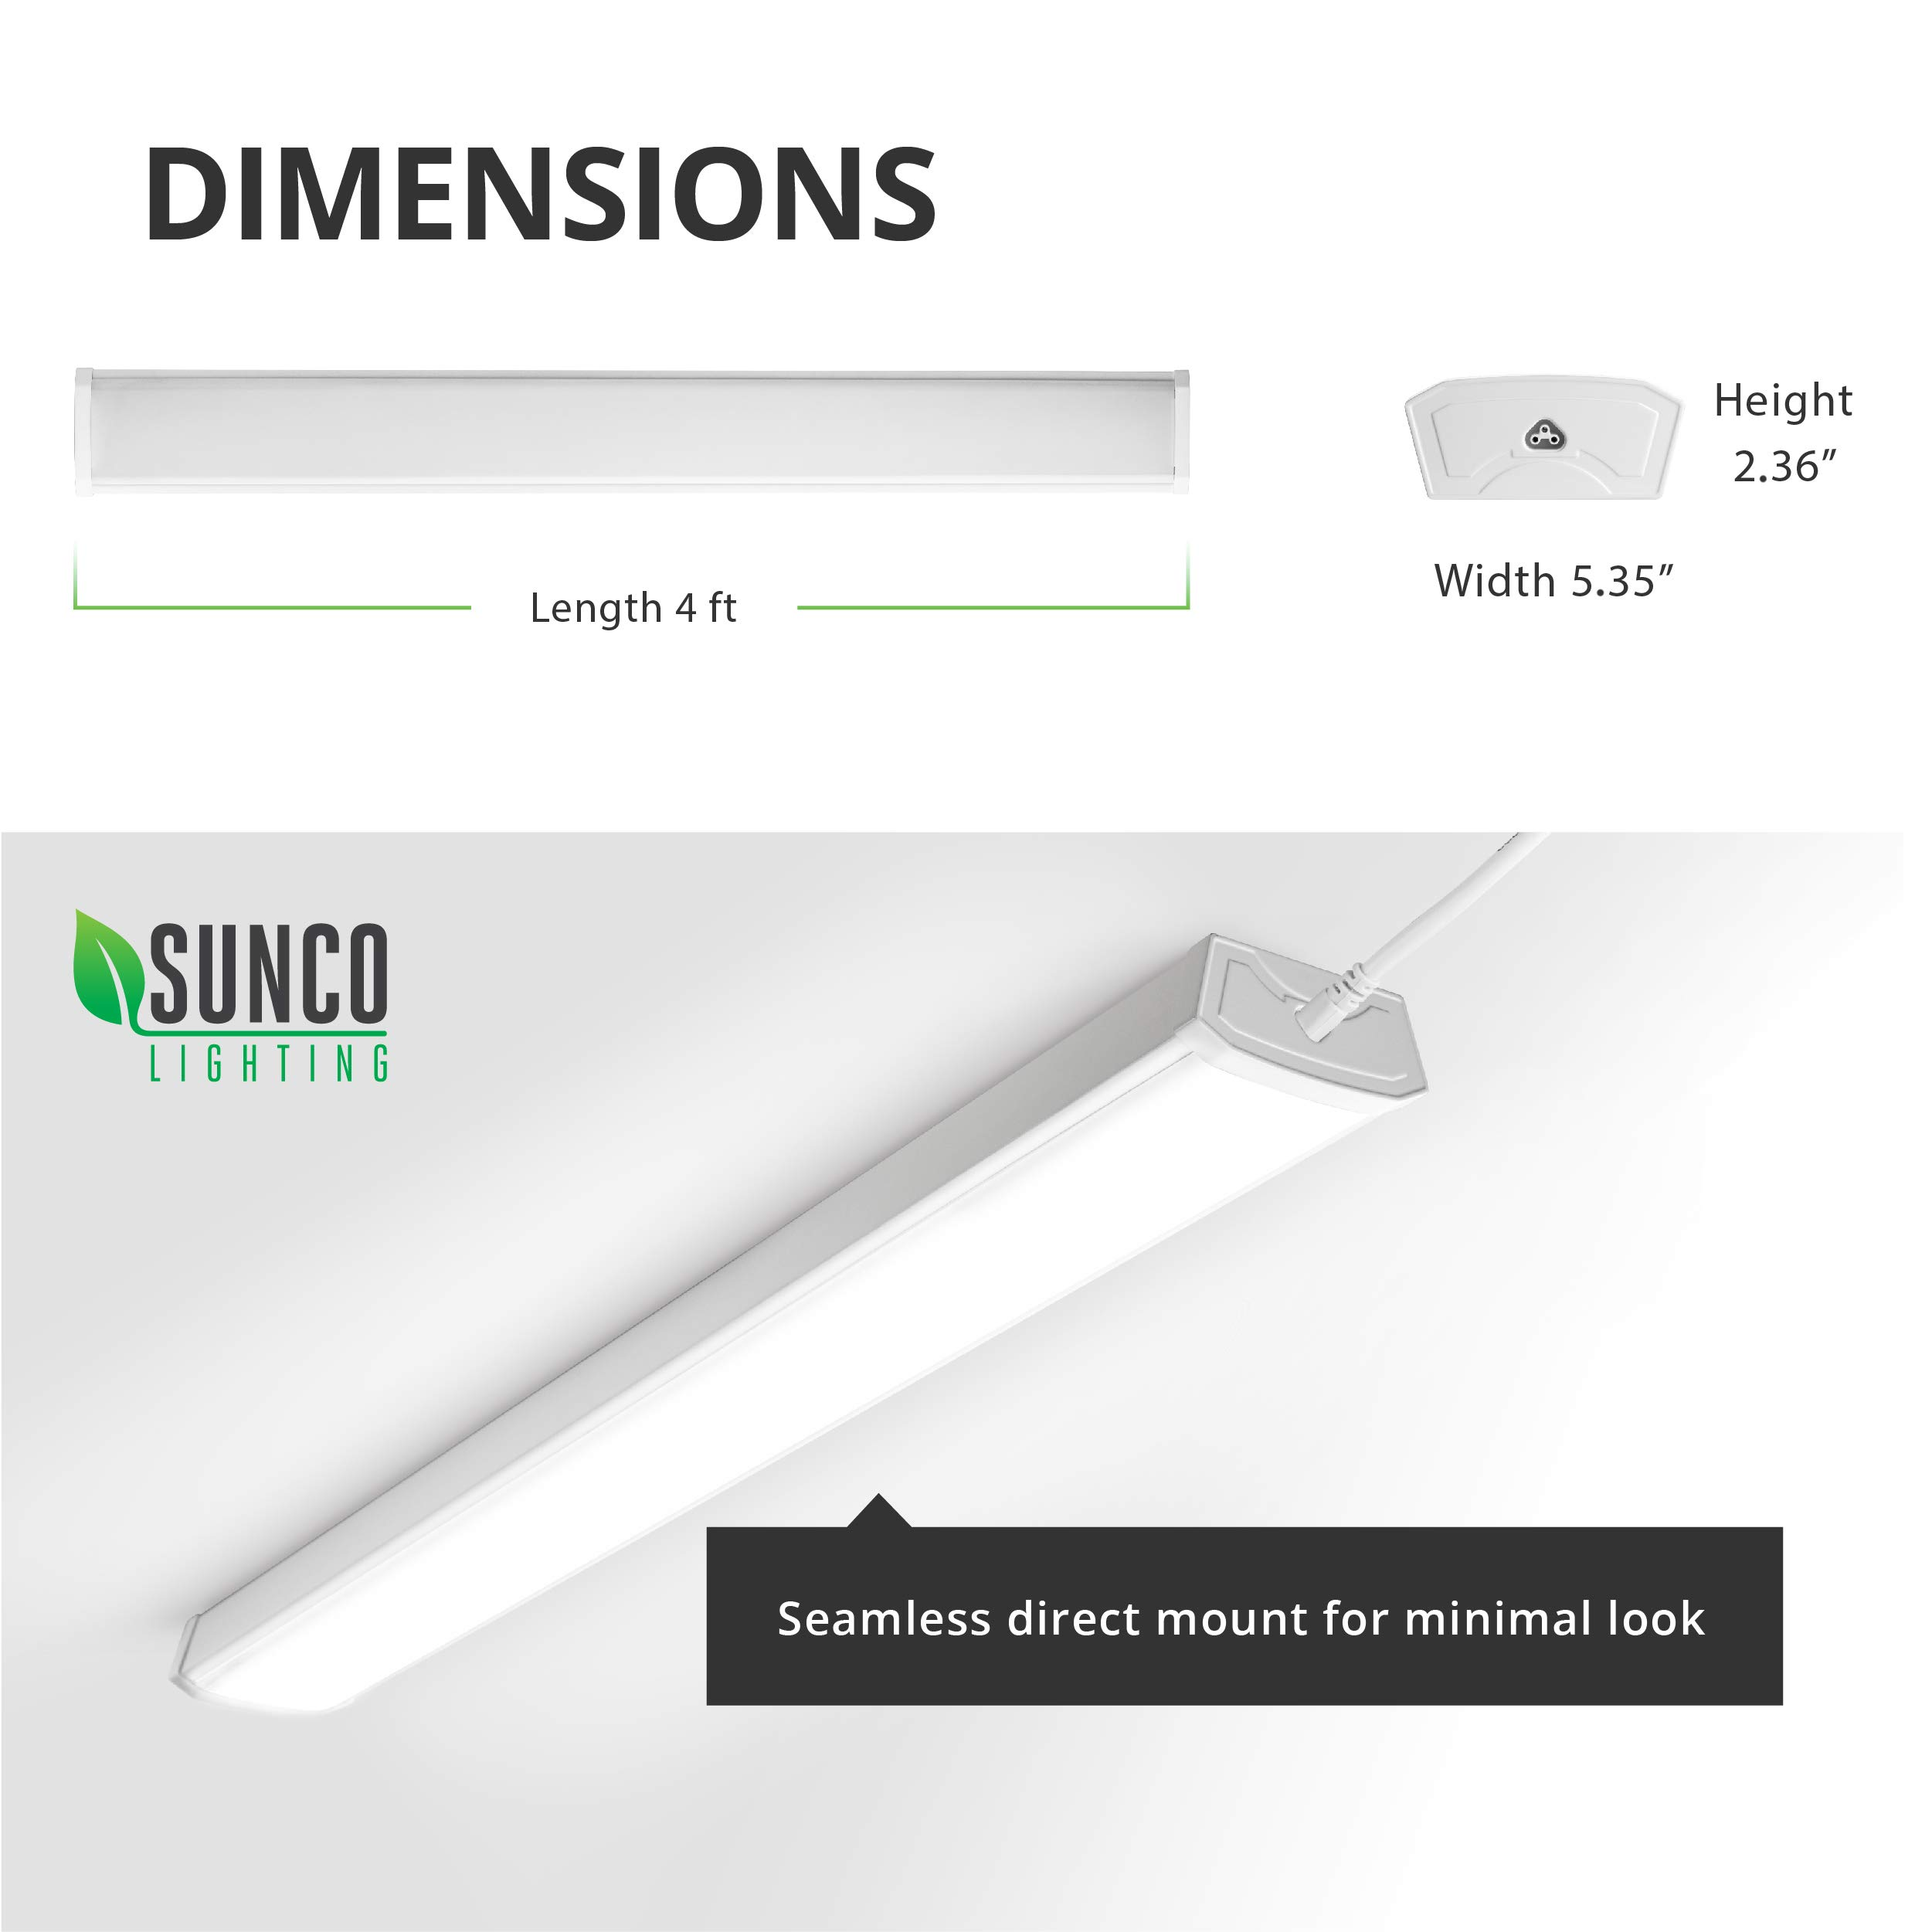 Sunco Lighting 12 Pack Wraparound LED Shop Light, 4 FT, Linkable, 40W=300W, 3500 LM, 5000K Daylight, Integrated LED, Direct Wire, Flush Mount Fixture, Utility Light, Garage- ETL, Energy Star by Sunco Lighting (Image #3)